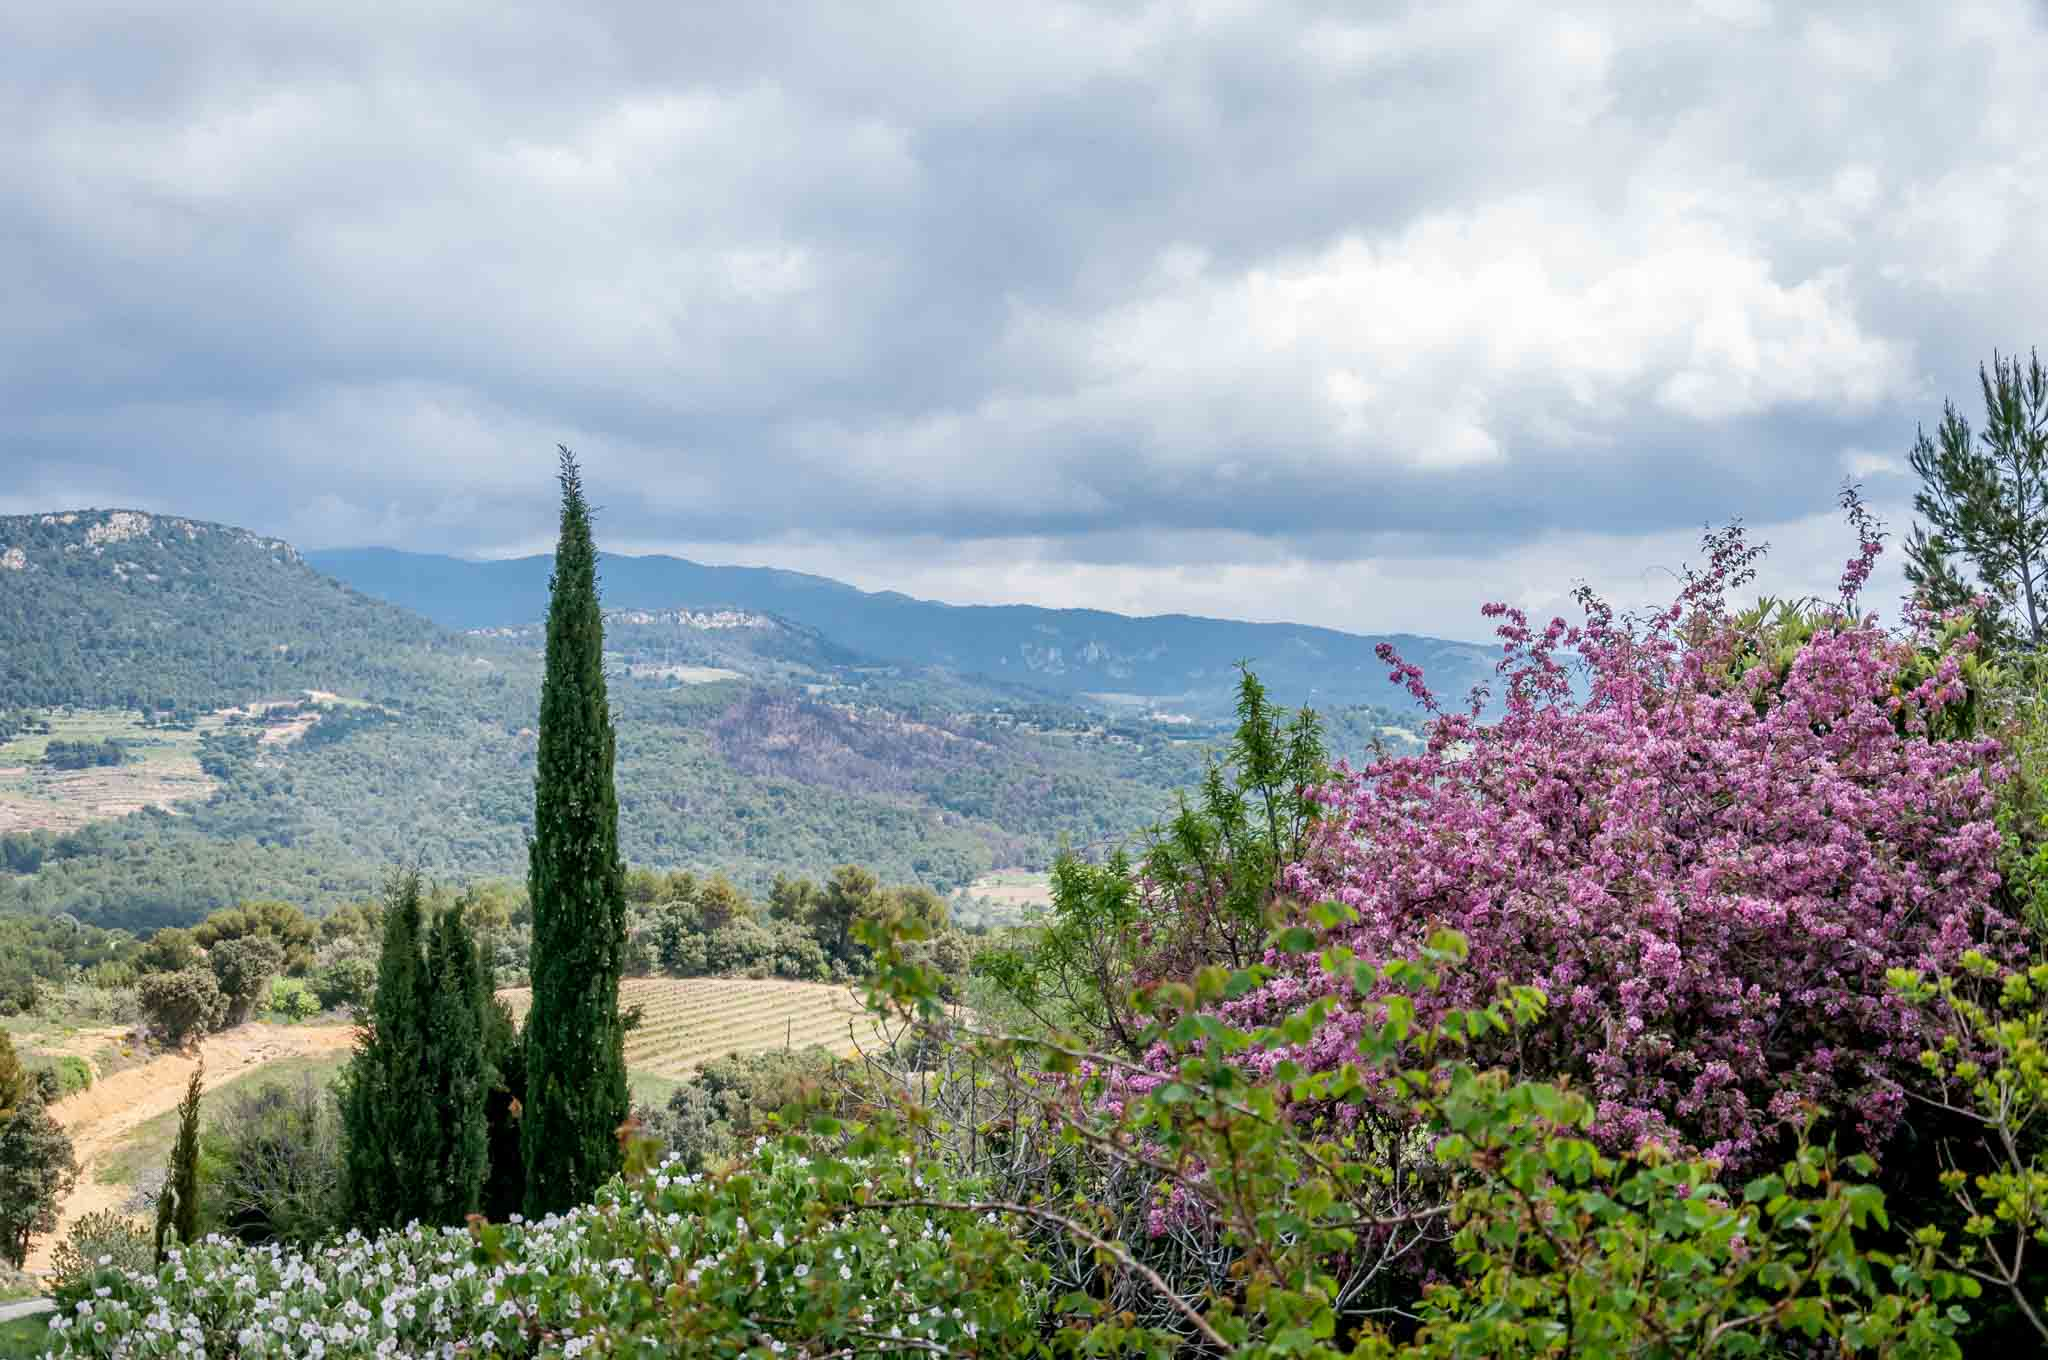 Mountains, trees, and flowers of  the Cotes du Rhone valley